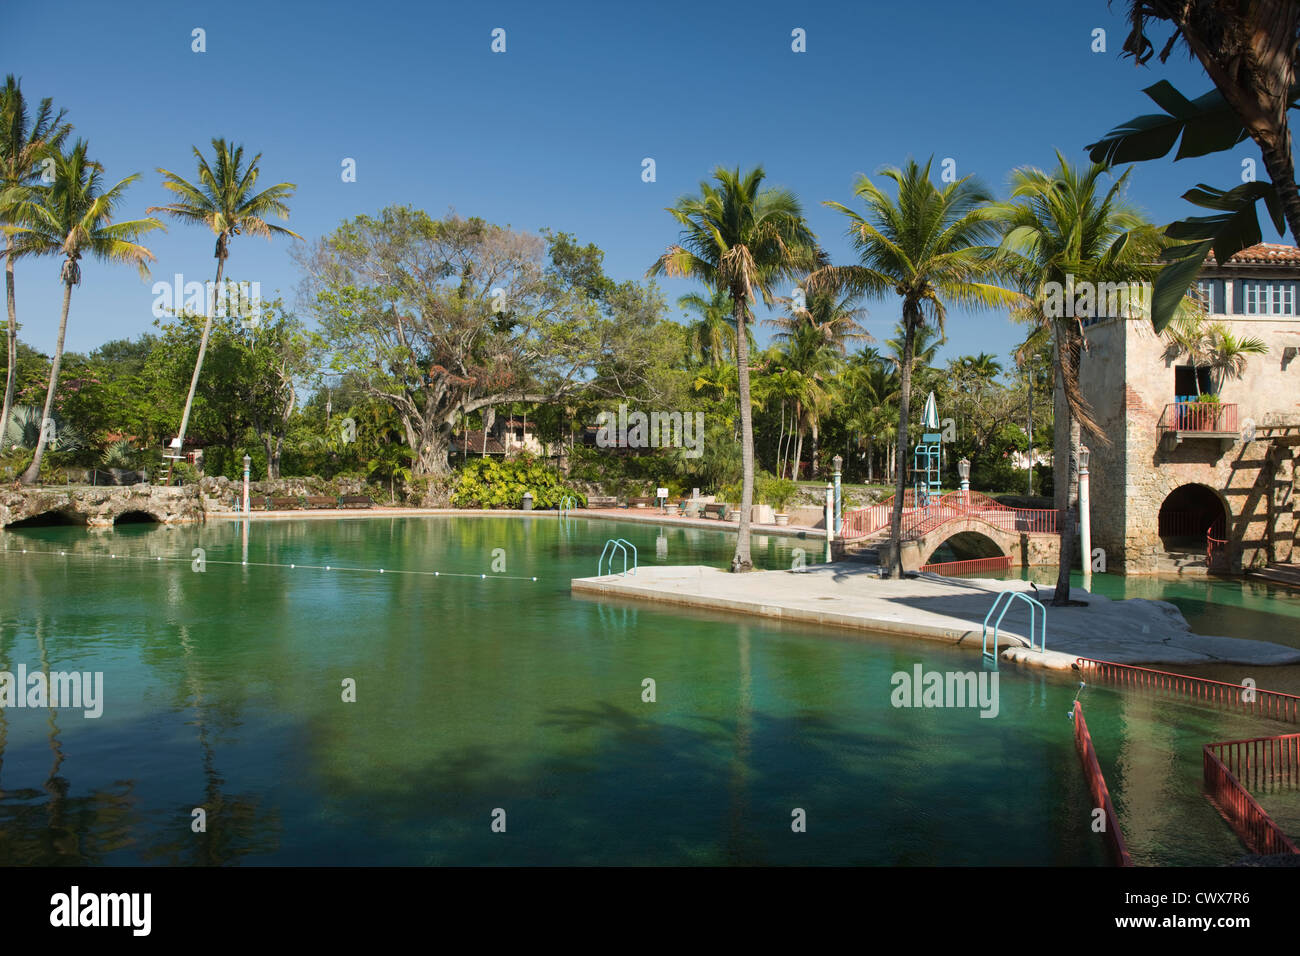 VENETIAN POOL MUNICIPAL SWIMMING POOL CORAL GABLES MIAMI FLORIDA USA - Stock Image